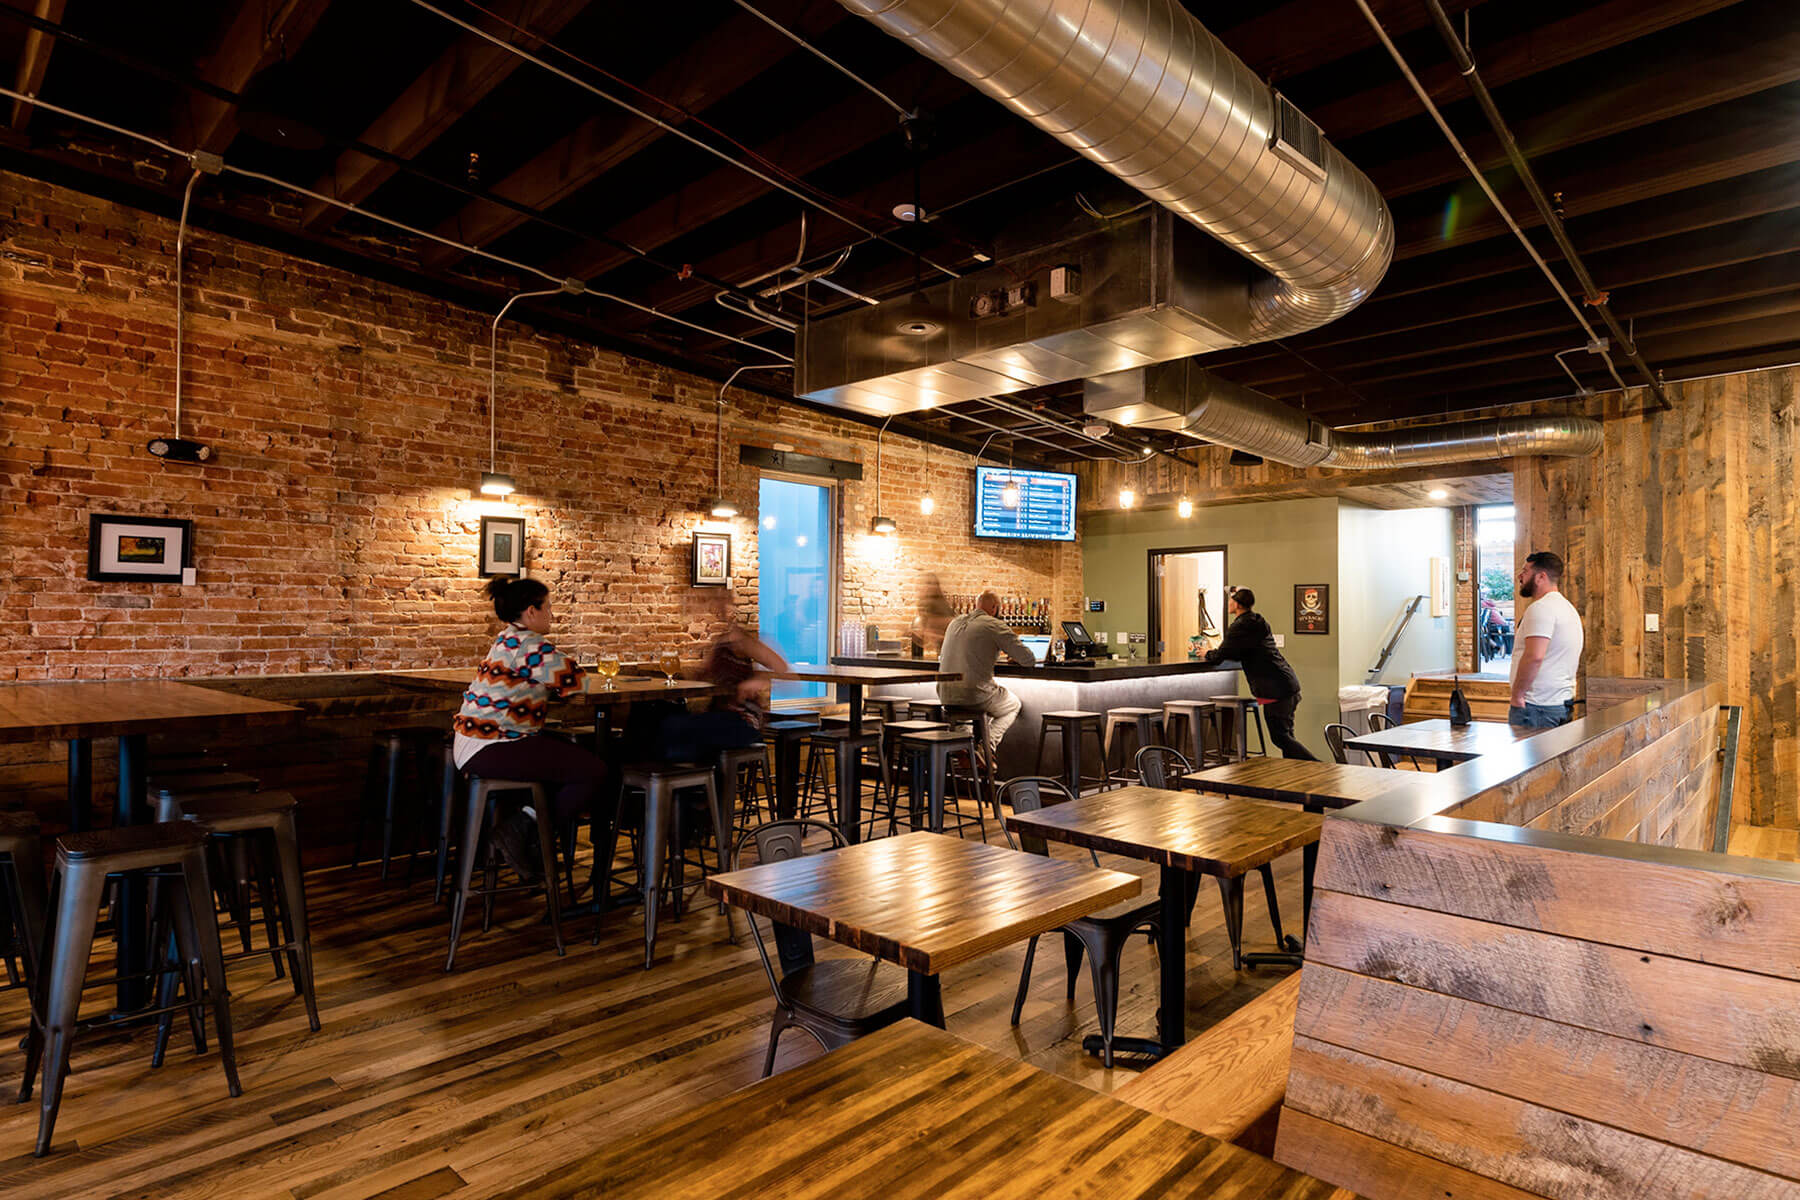 Inside the Tap Room of Odell Brewing Co at the River North Art District in Denver, Colorado